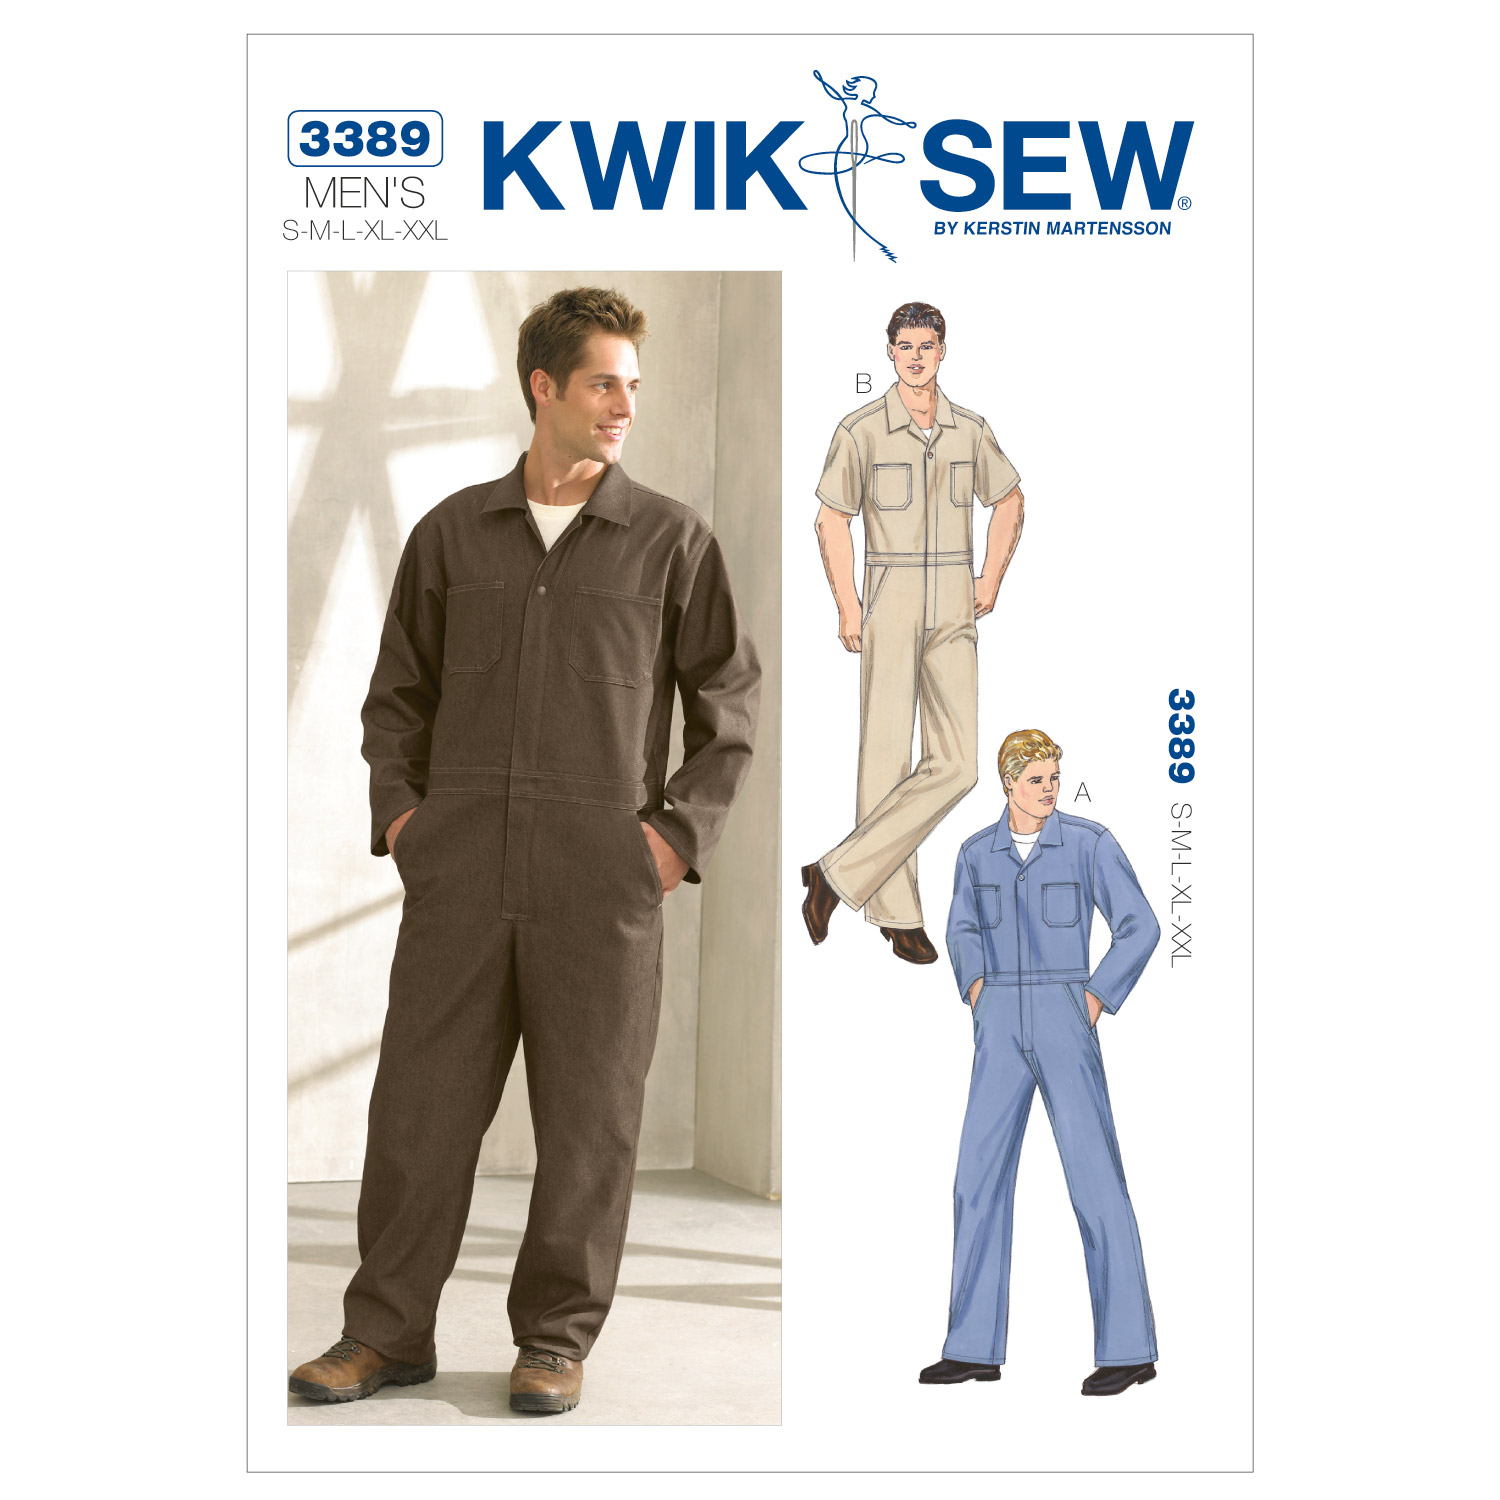 1940s Trousers, Mens Wide Leg Pants Kwik Sew Mens Coveralls Pattern $13.00 AT vintagedancer.com